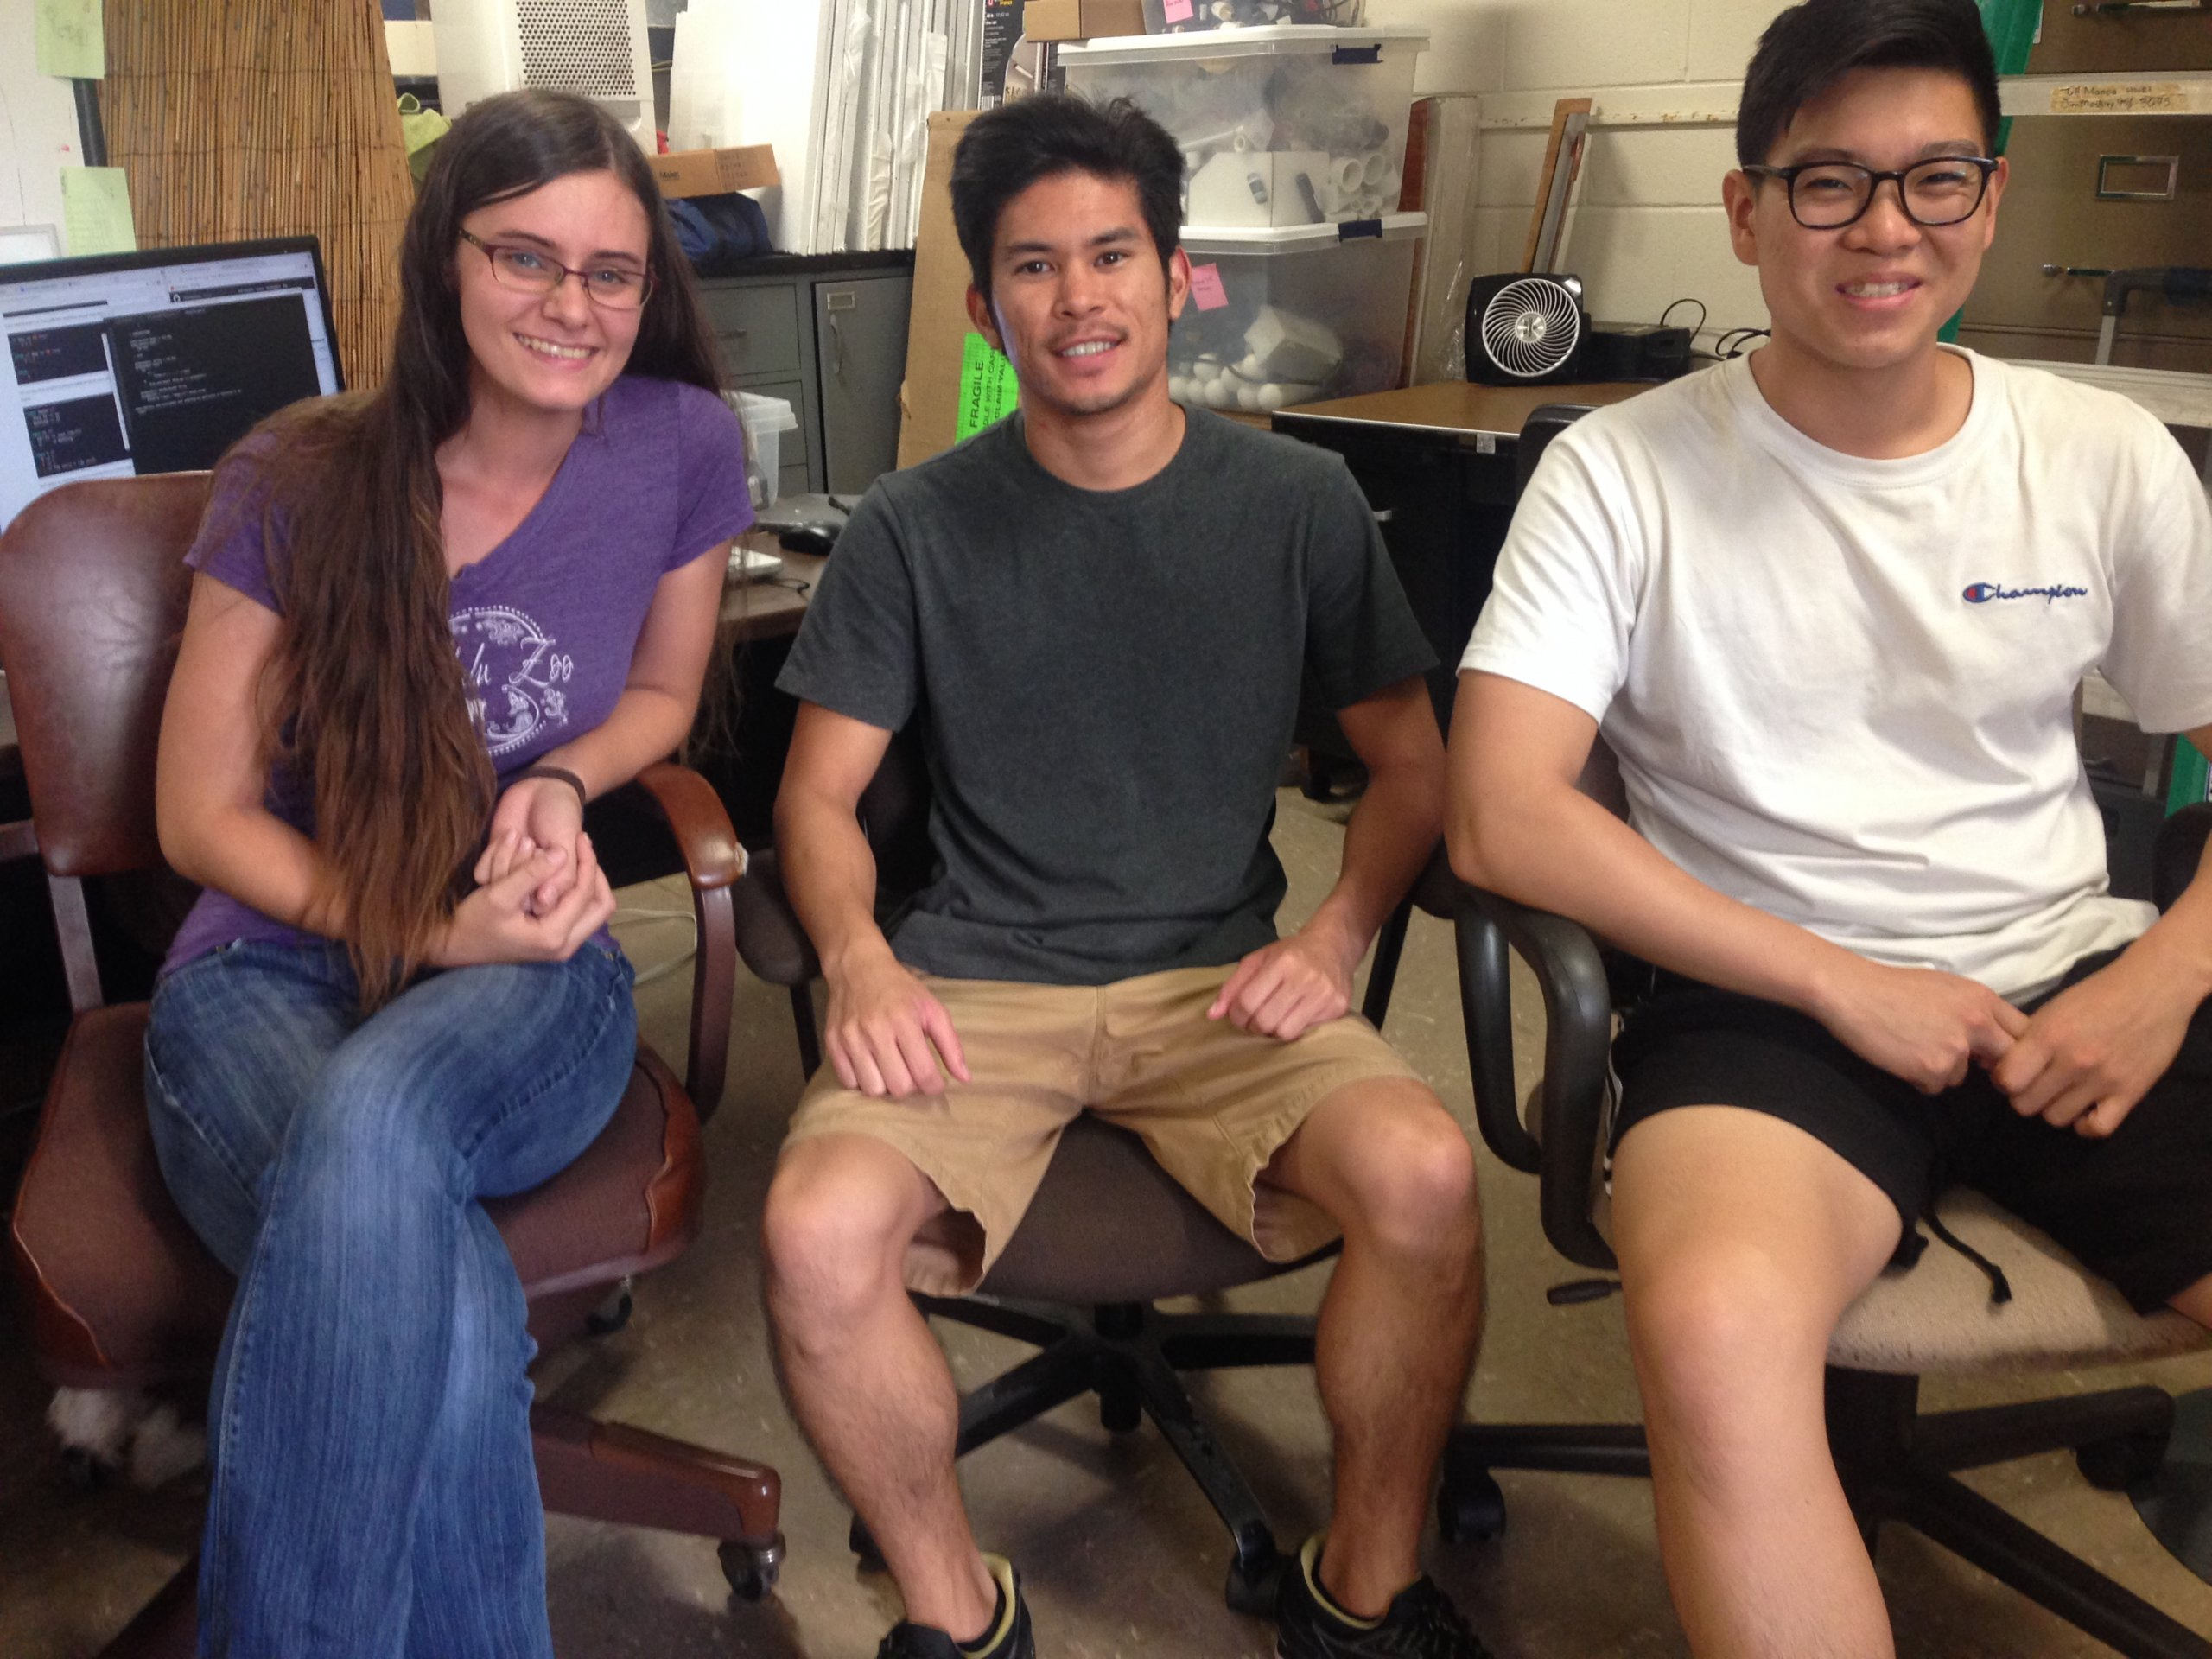 three students sitting in office chairs